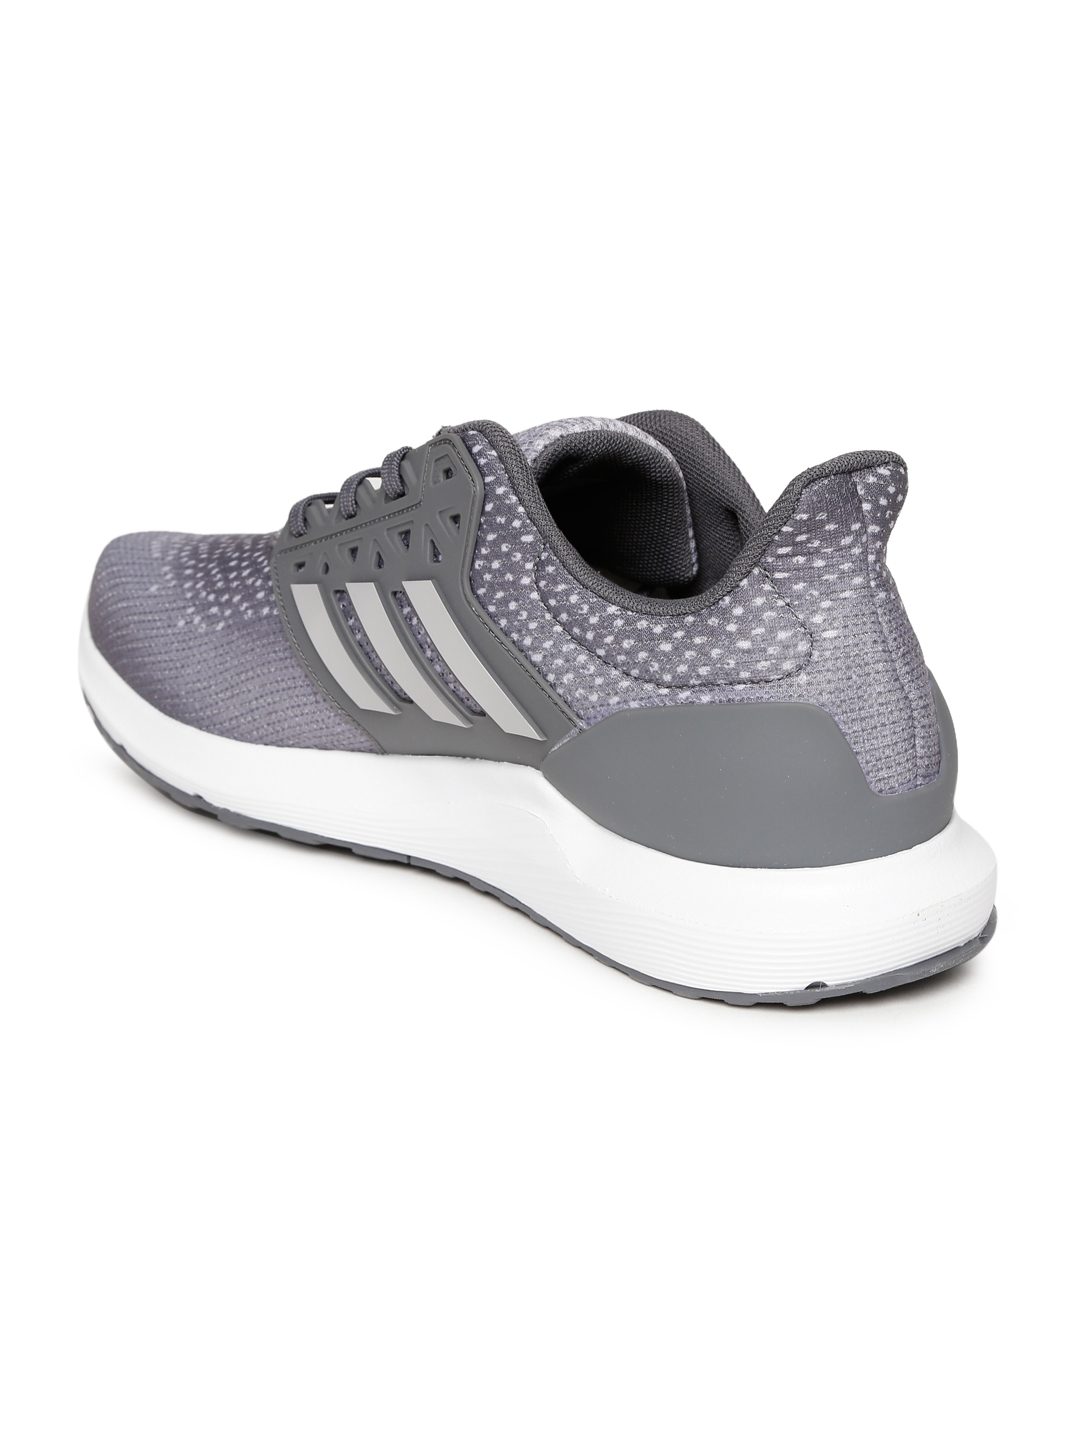 Buy Adidas Men Grey SOLYX M Running Shoes - Sports Shoes for Men ... 4d9f00af6